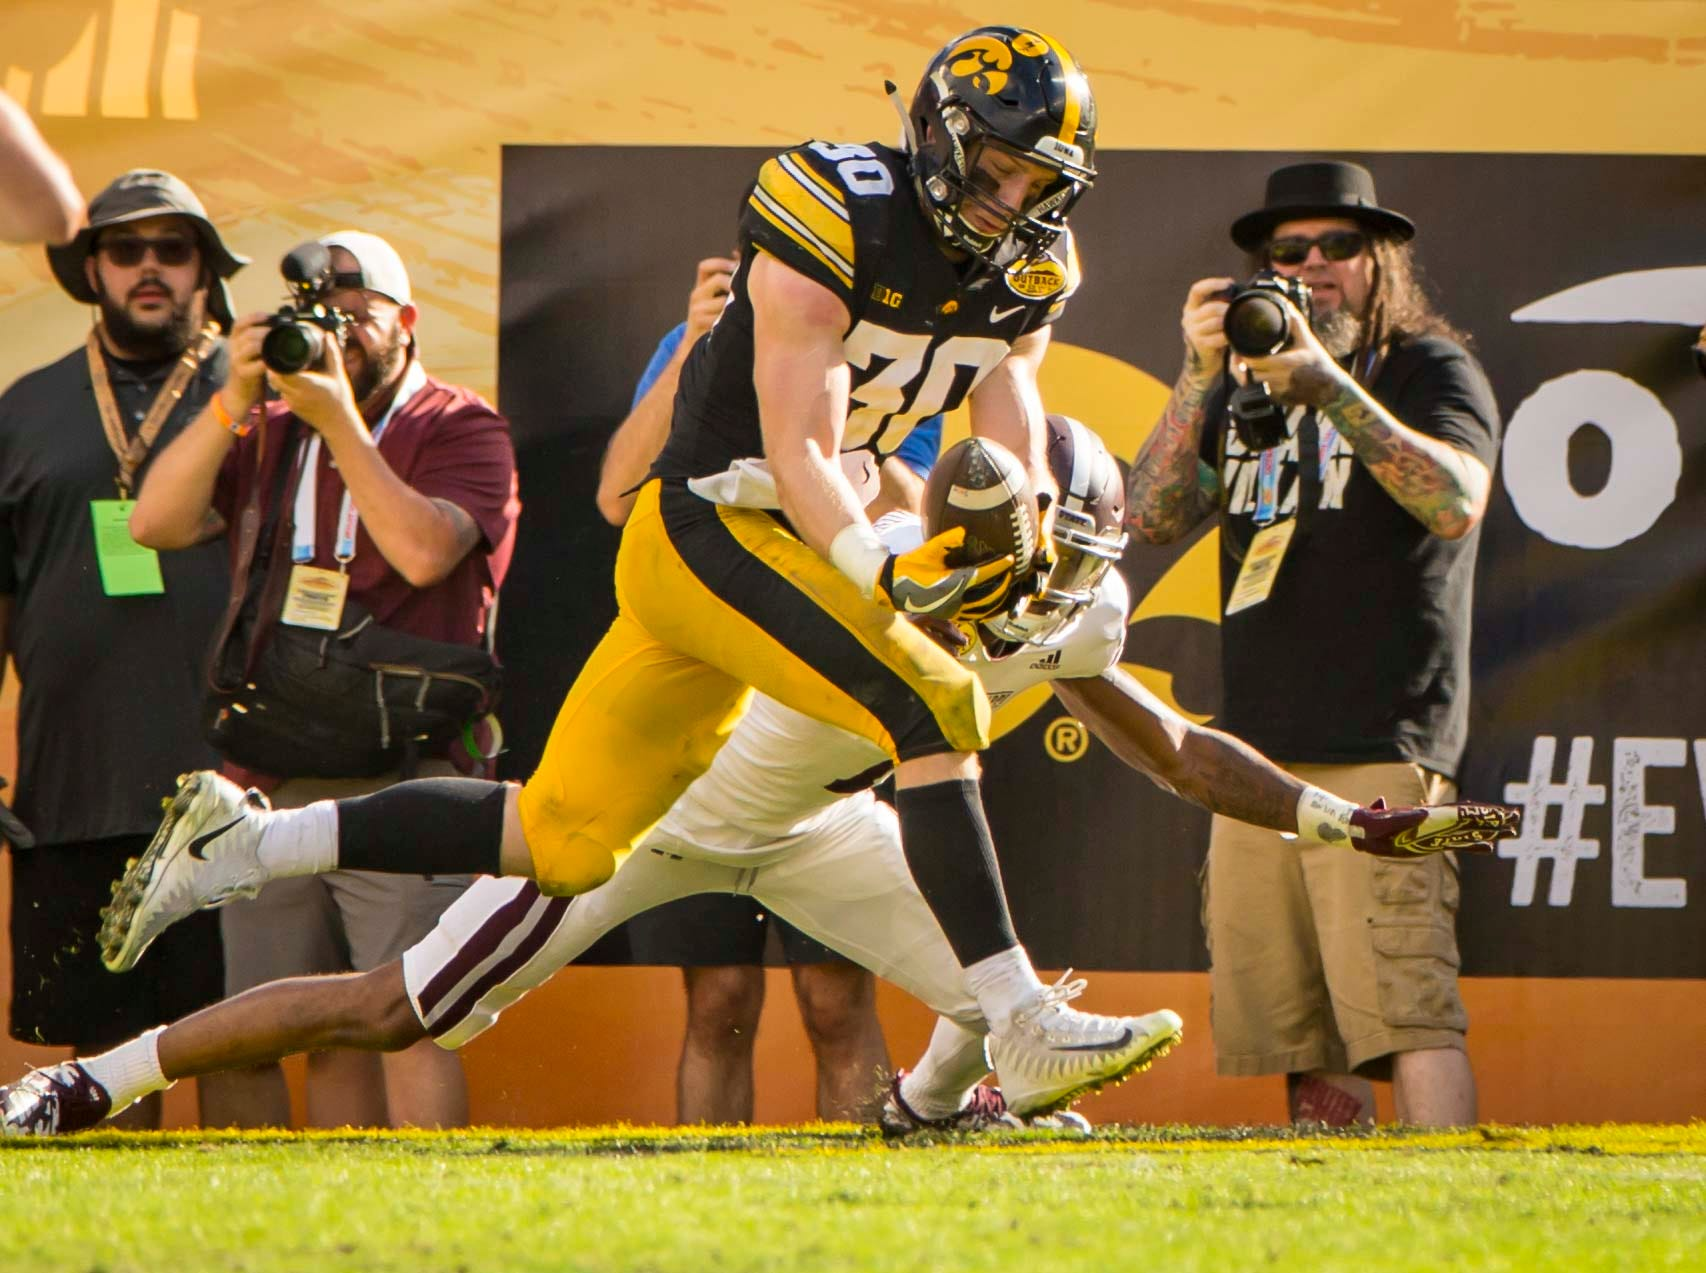 Iowa defensive back Jake Gervase intercepts a Mississippi State pass in the end zone in the second half at the Outback Bowl Tues., Jan. 1, 2019, at Raymond James Stadium in Tampa, Florida. Iowa defeated Mississippi State 27-22.